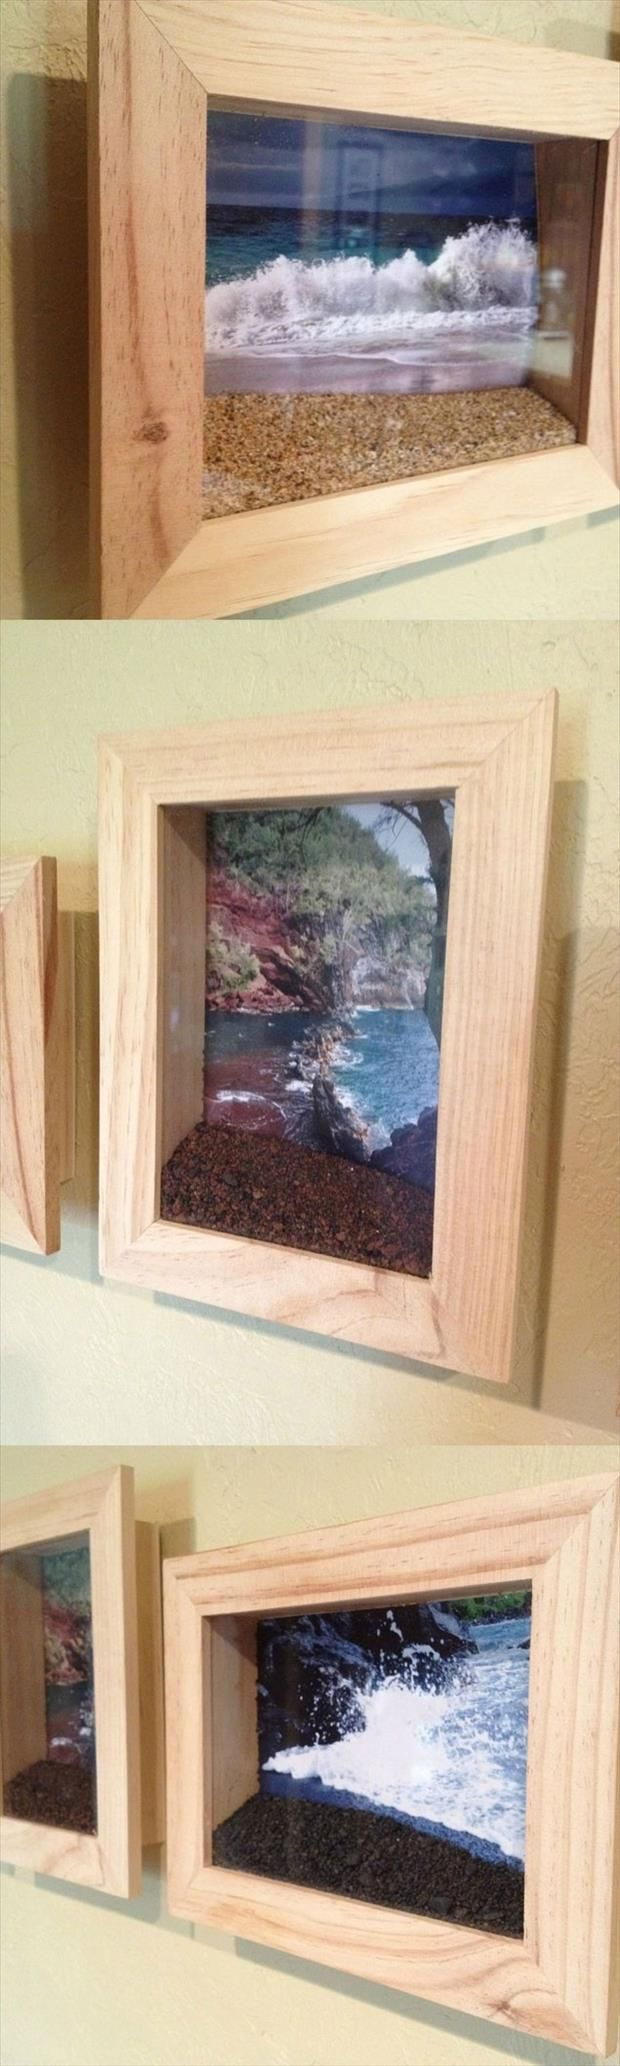 Memorabilias on frame, including picture where you get the sands or stones.